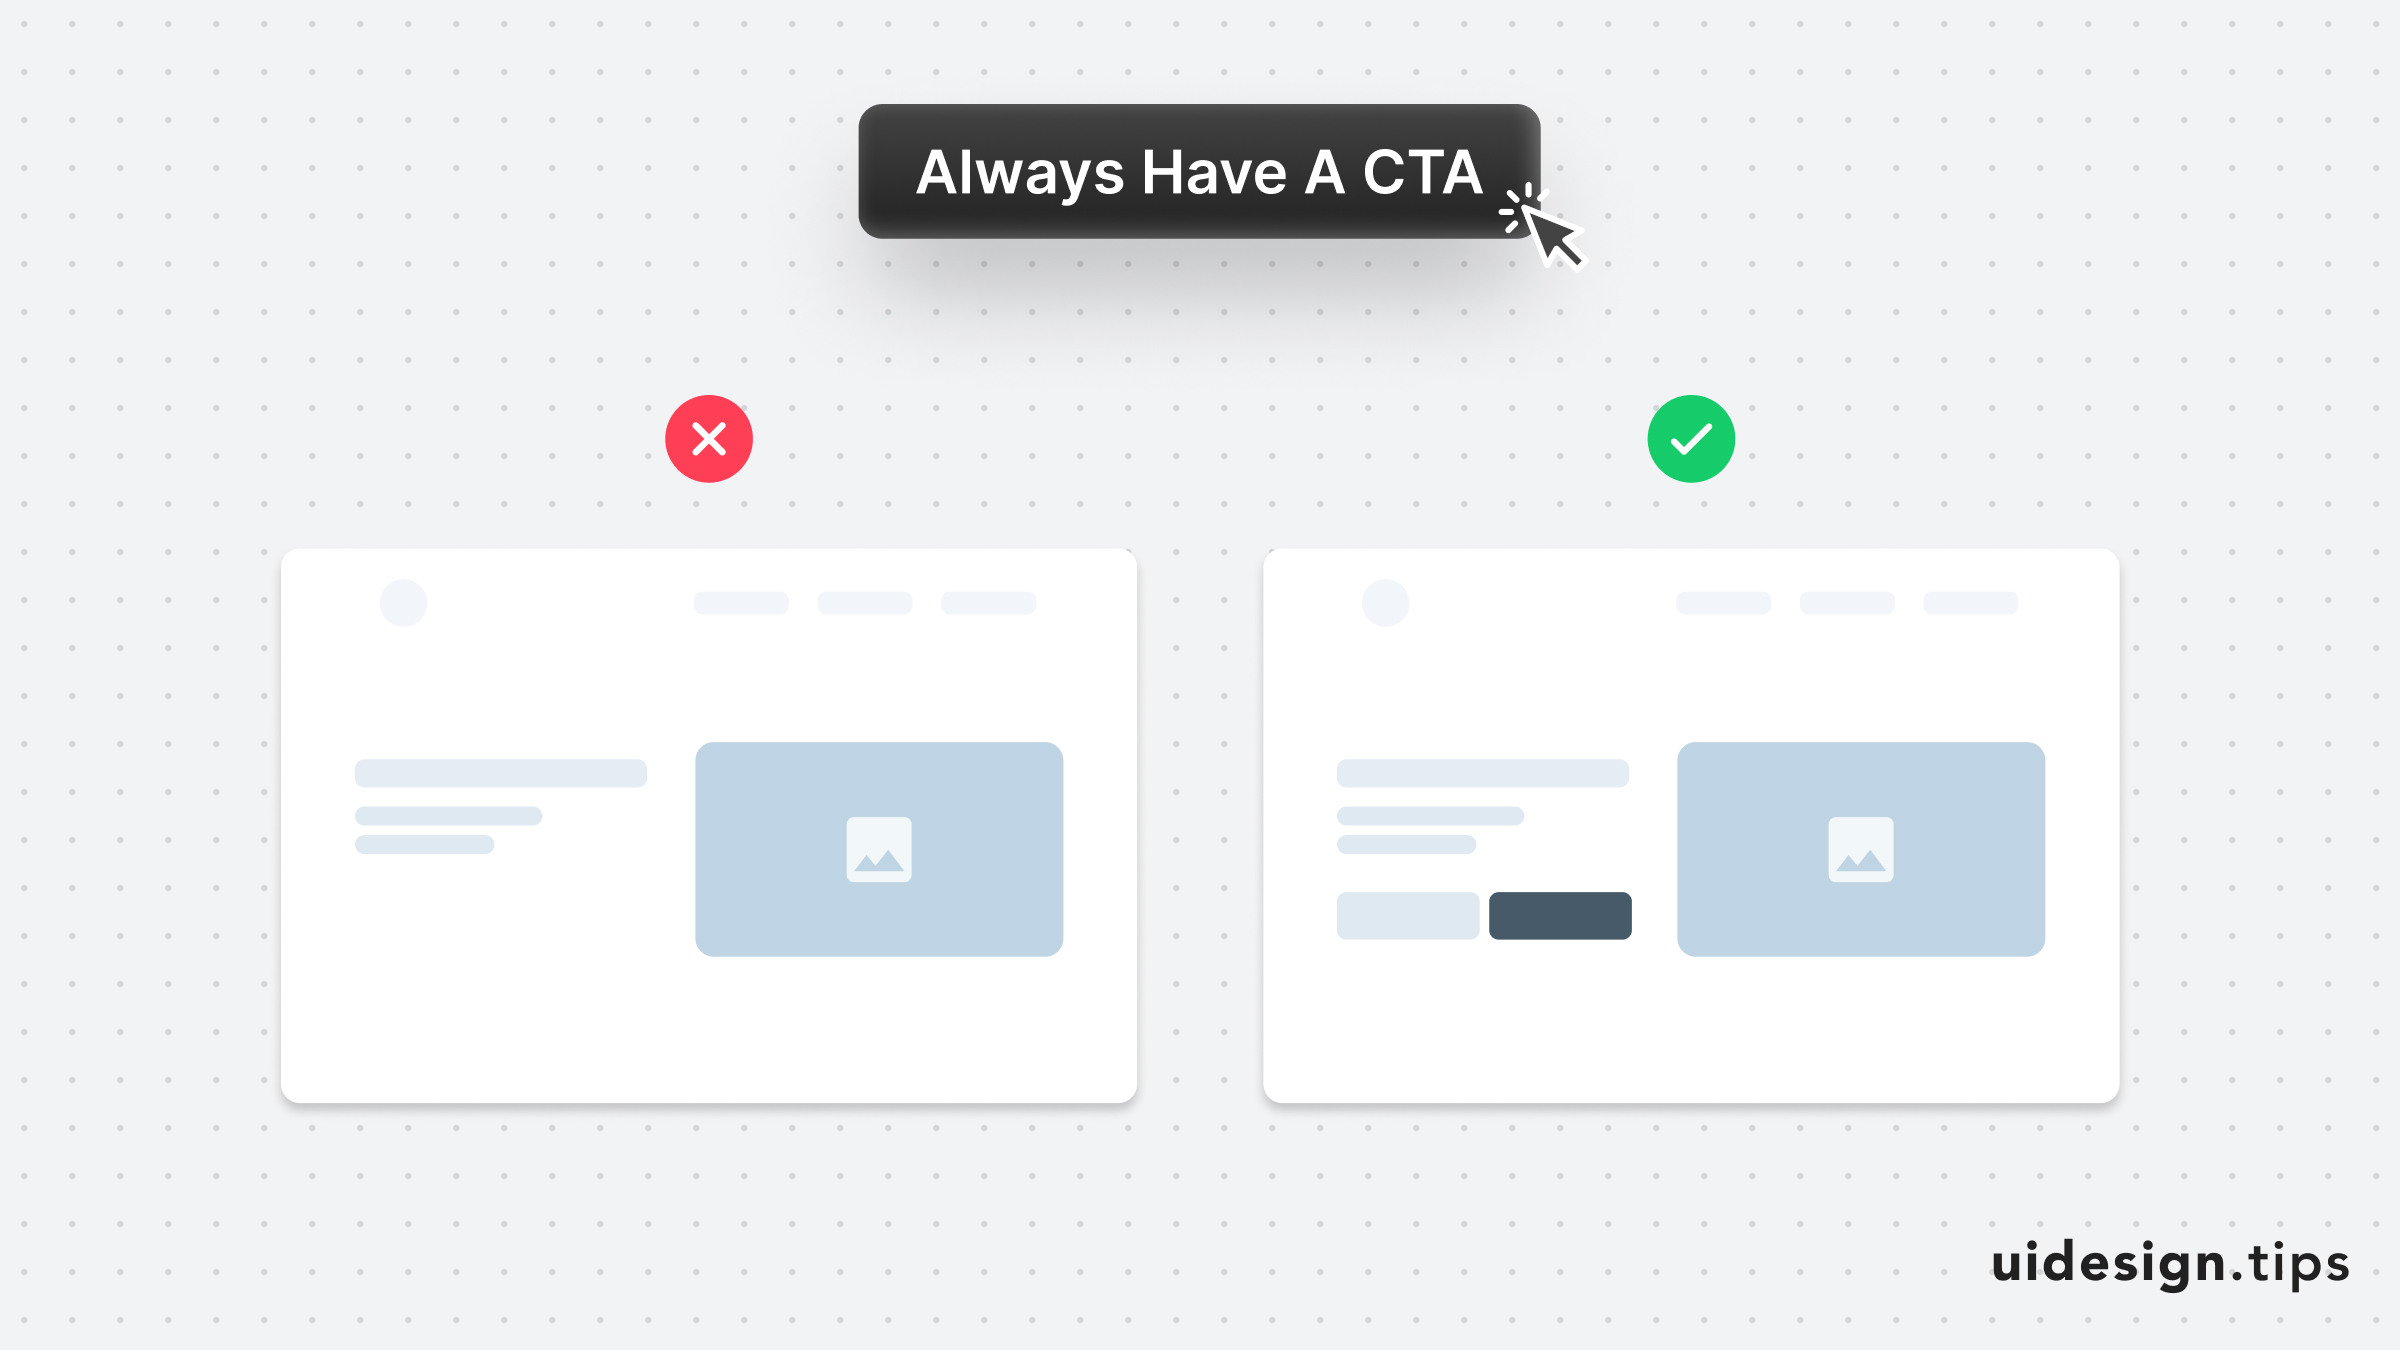 Always Have A CTA